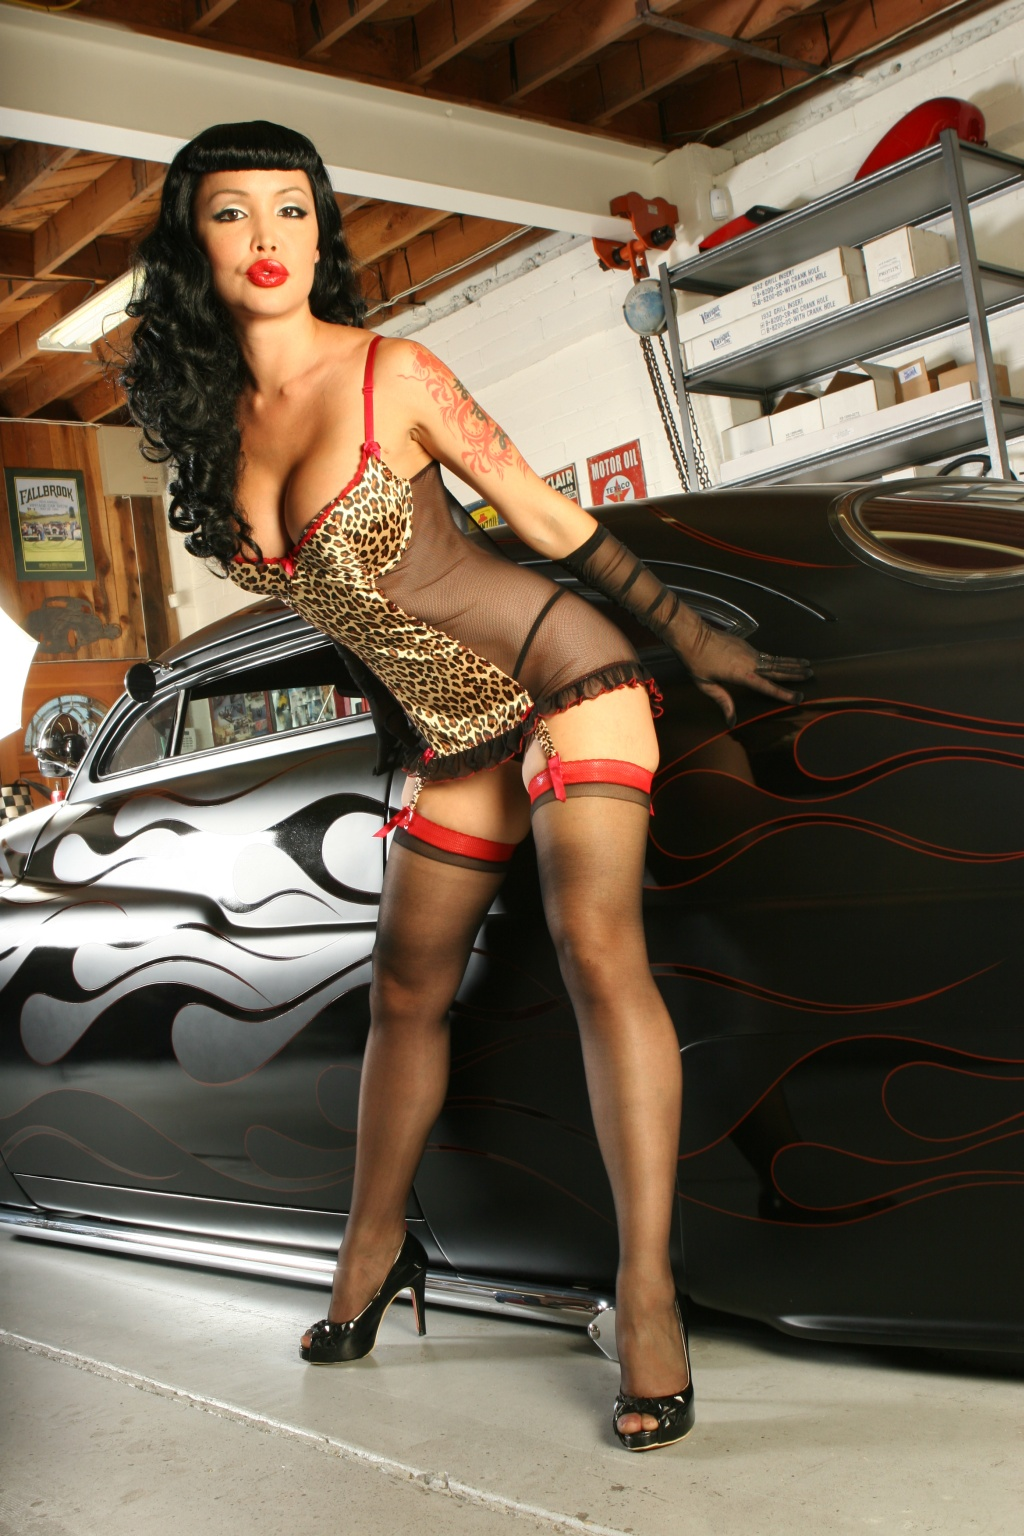 Sexy Pinup Girl Masuimi Max And Cool Kustom Merc It S Hot Rod Pinups Myrideisme Com